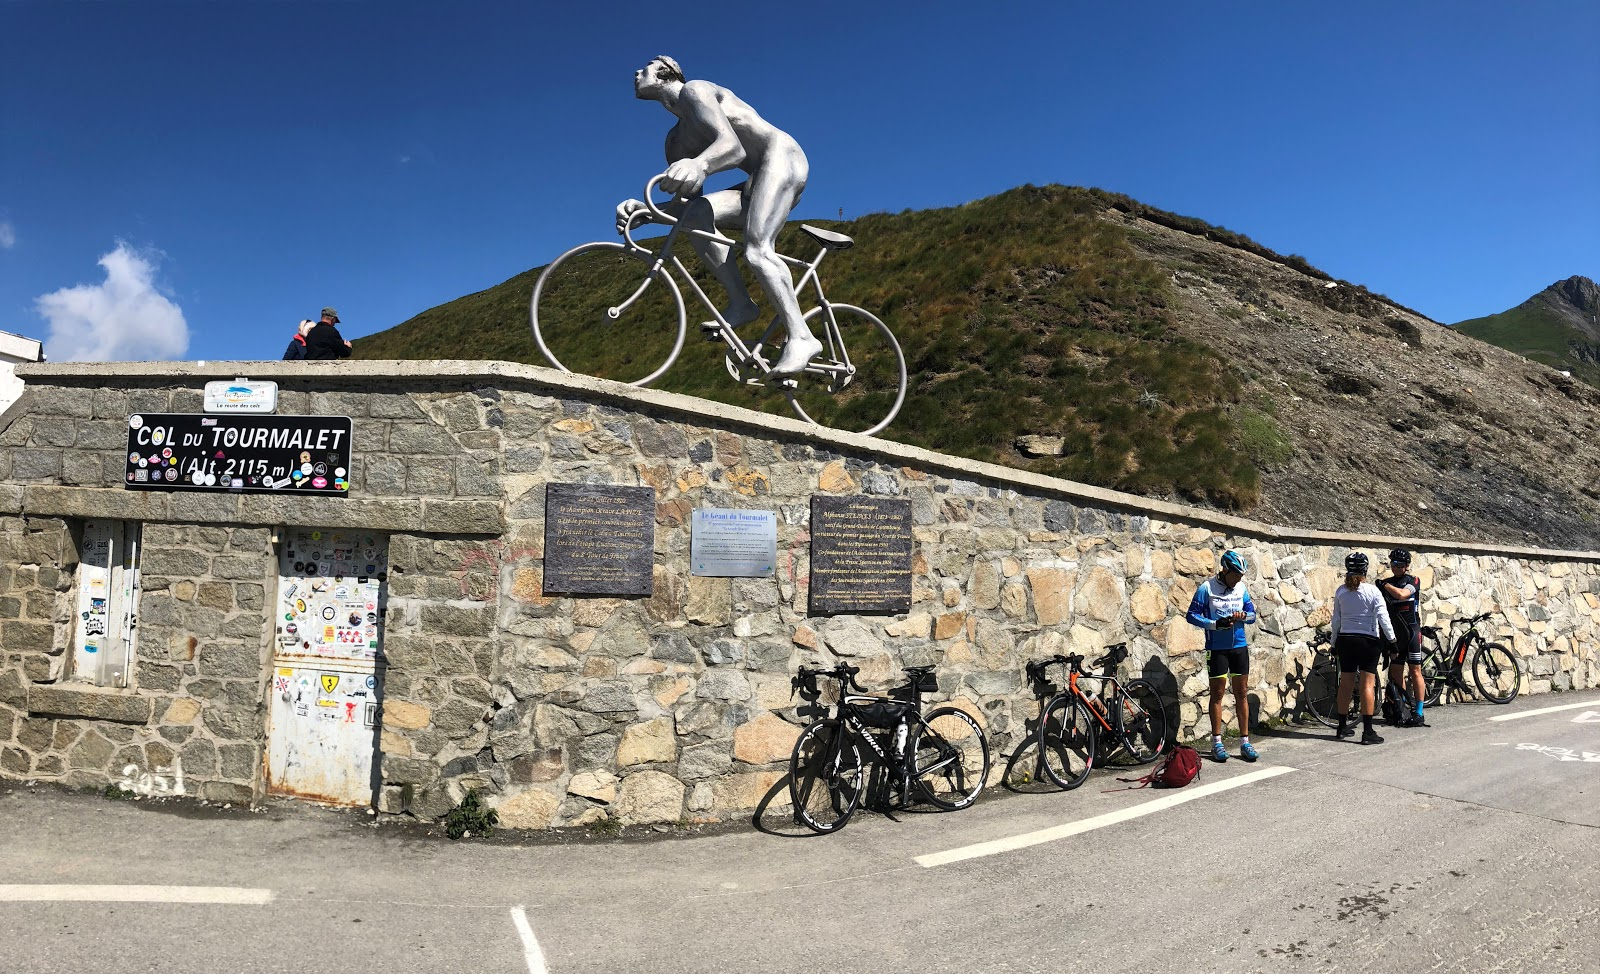 Bike climb up Col du Tourmalet - col - bicycles and cyclists; Le Geant statue, col sign